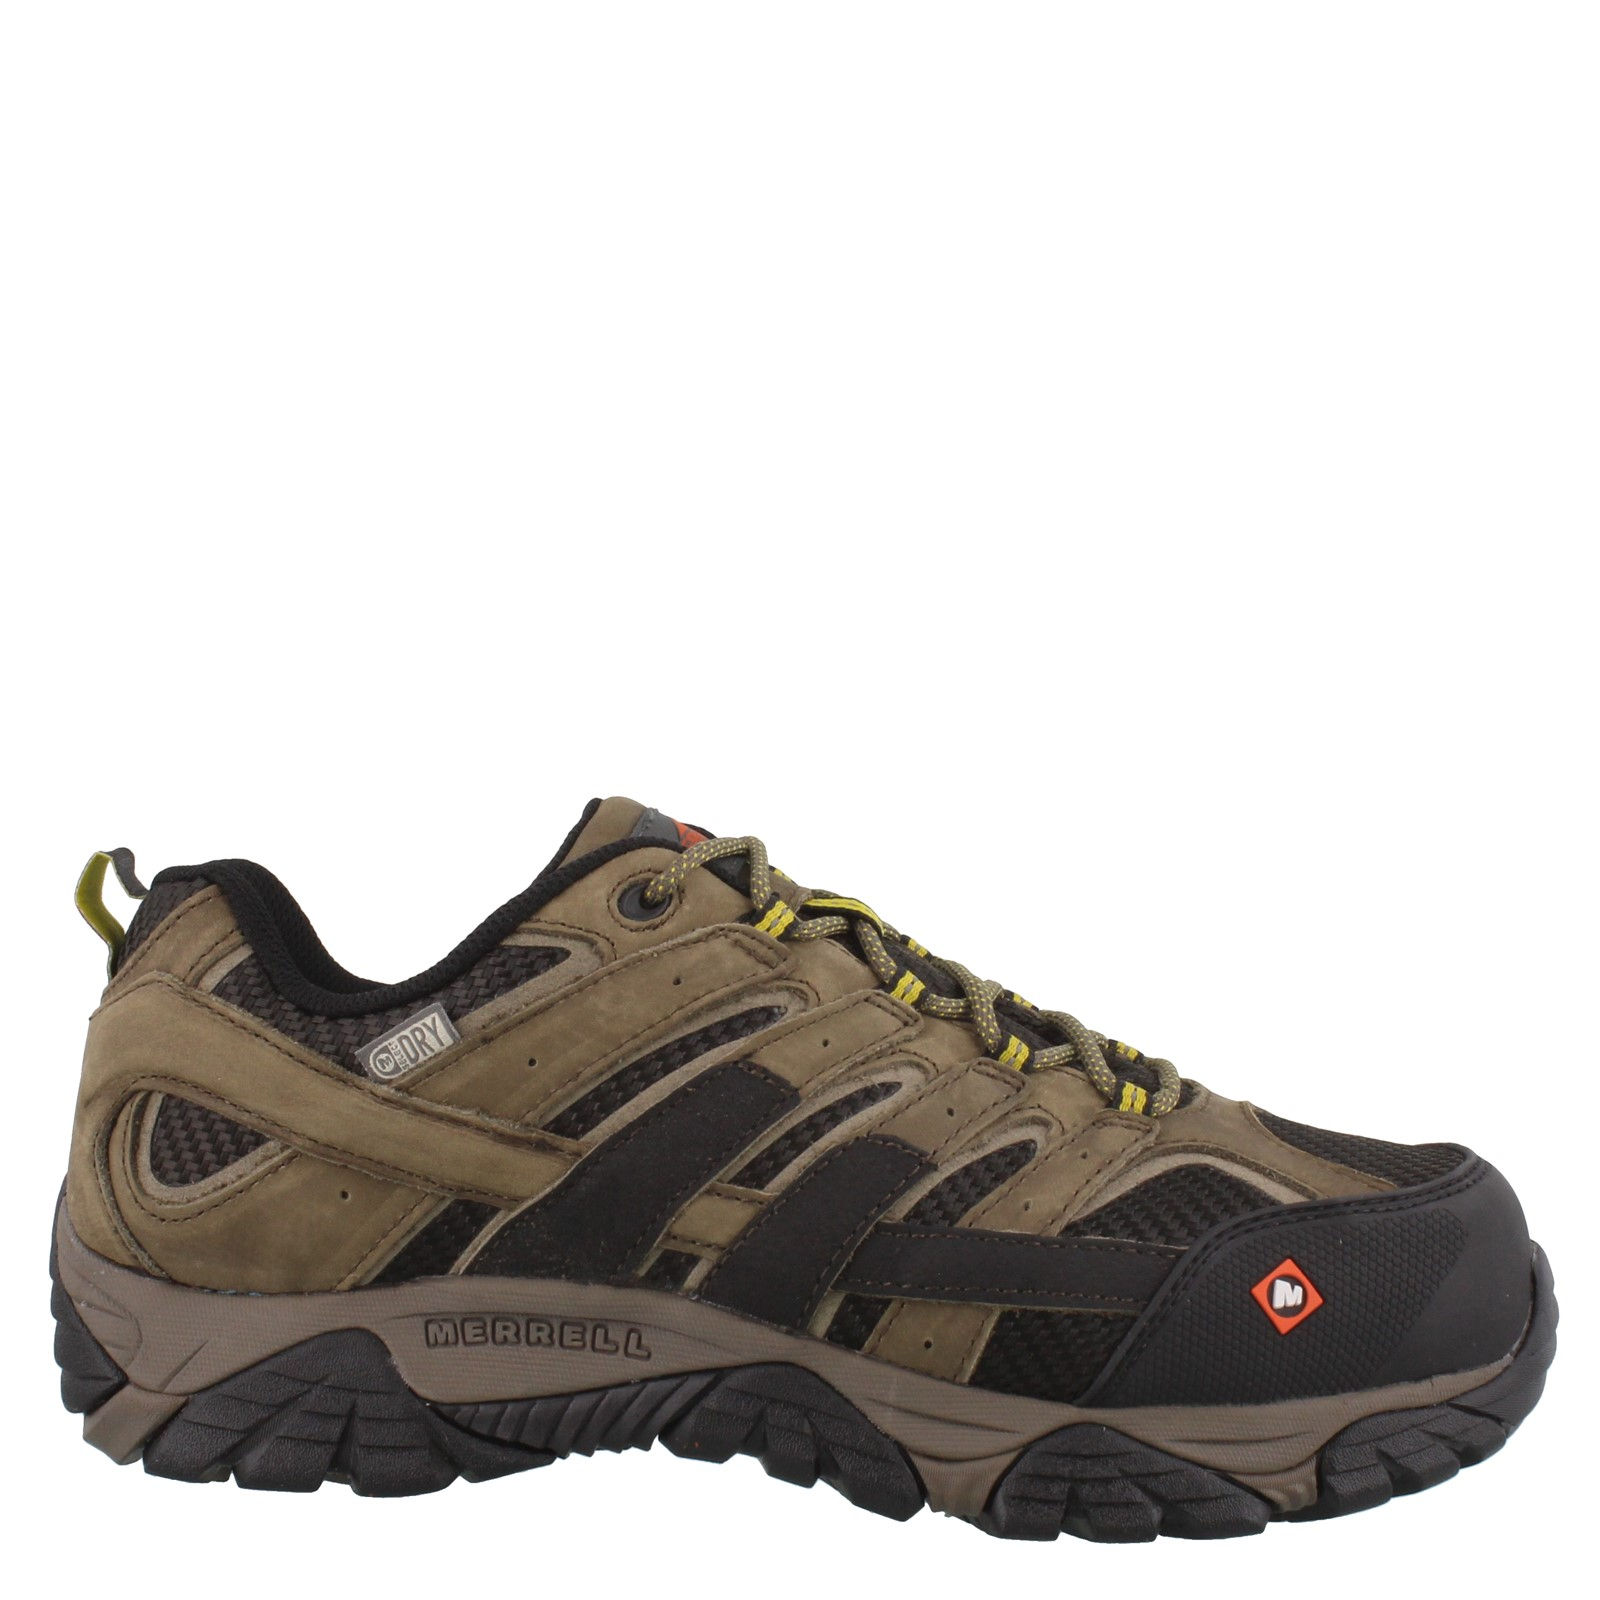 Men's Merrell, Moab 2 Vent Low Waterproof Composite Toe Work Shoes